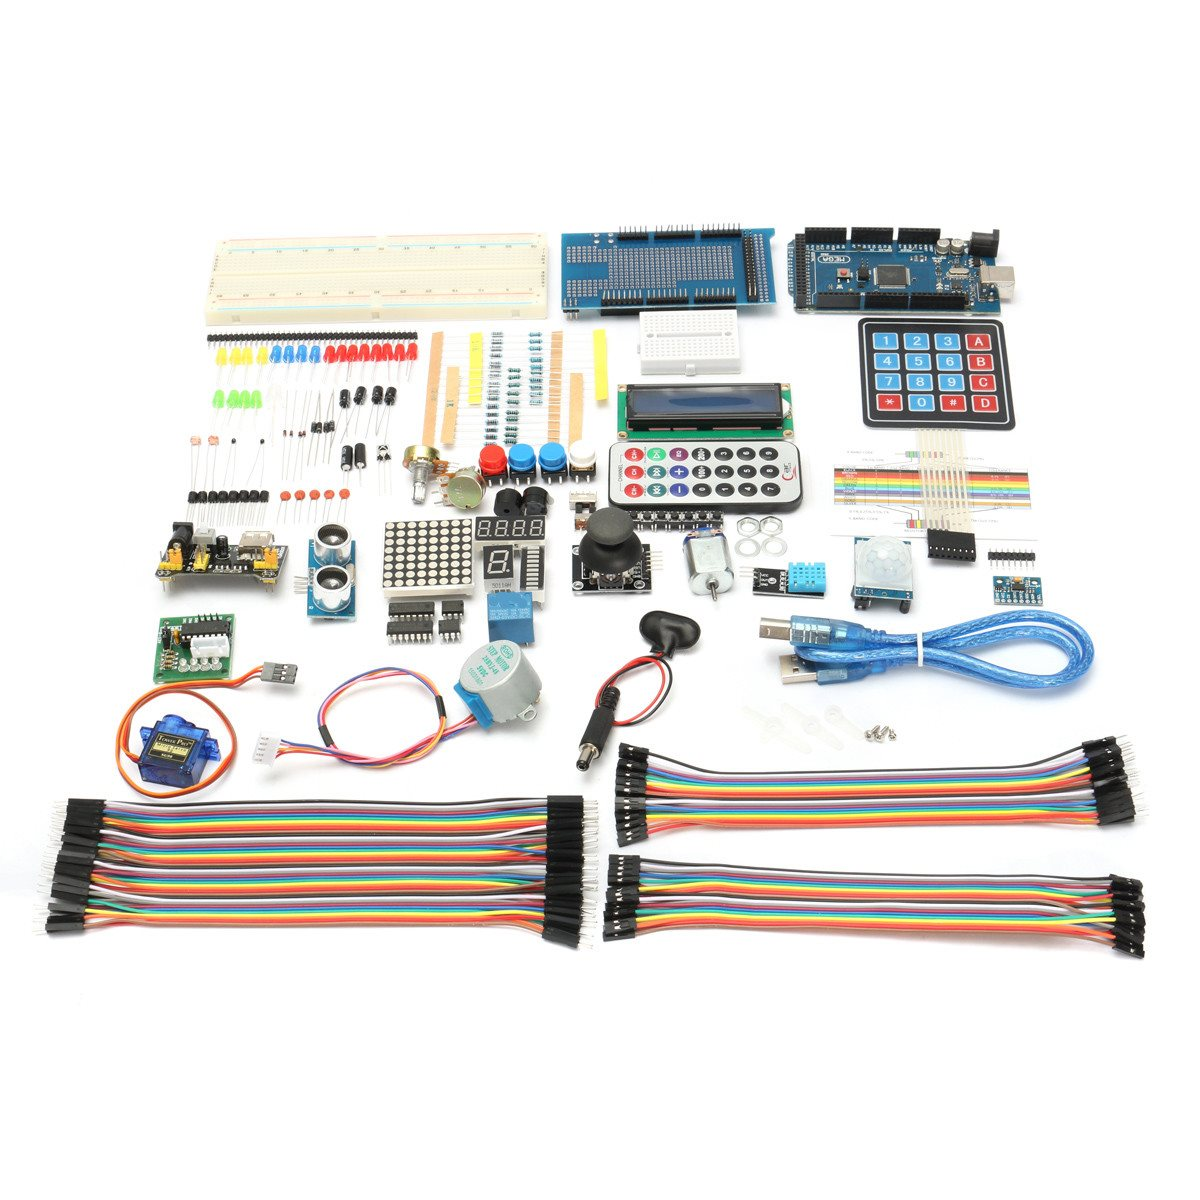 Image 2 - New DIY Electric Unit Ultimate Starter Kit for Arduino MEGA 2560 1602 LCD Servo Motor LED Relay RTC Electronic kit-in Electronics Stocks from Electronic Components & Supplies